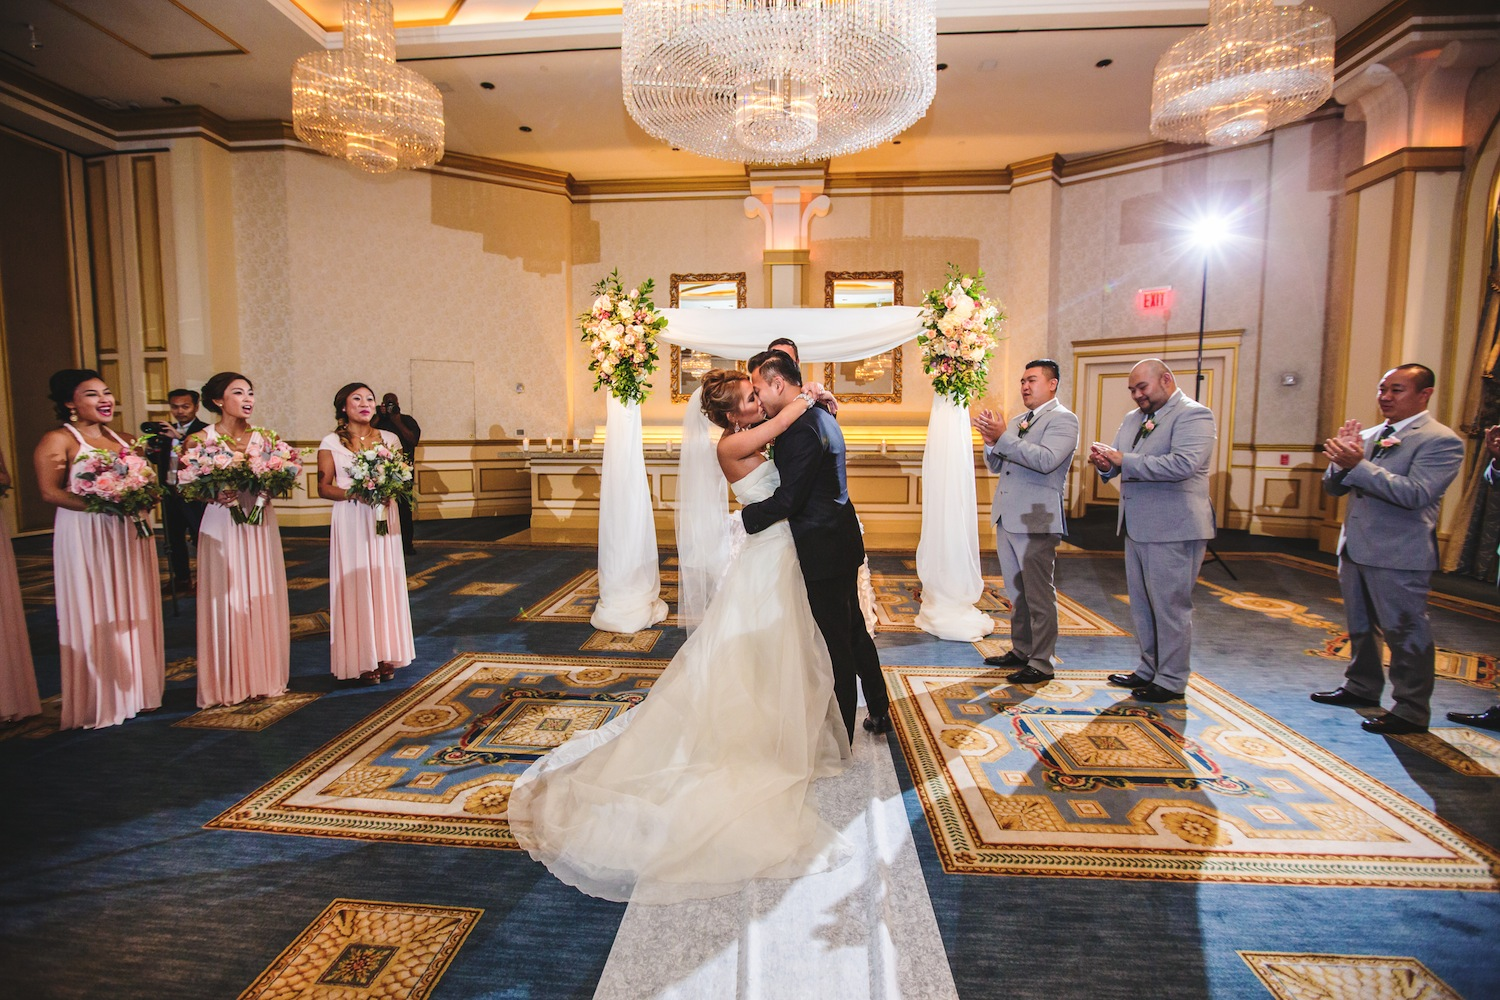 gracie-and-evan-kissing-at-altar-while-wedding-party-claps-nj-photography